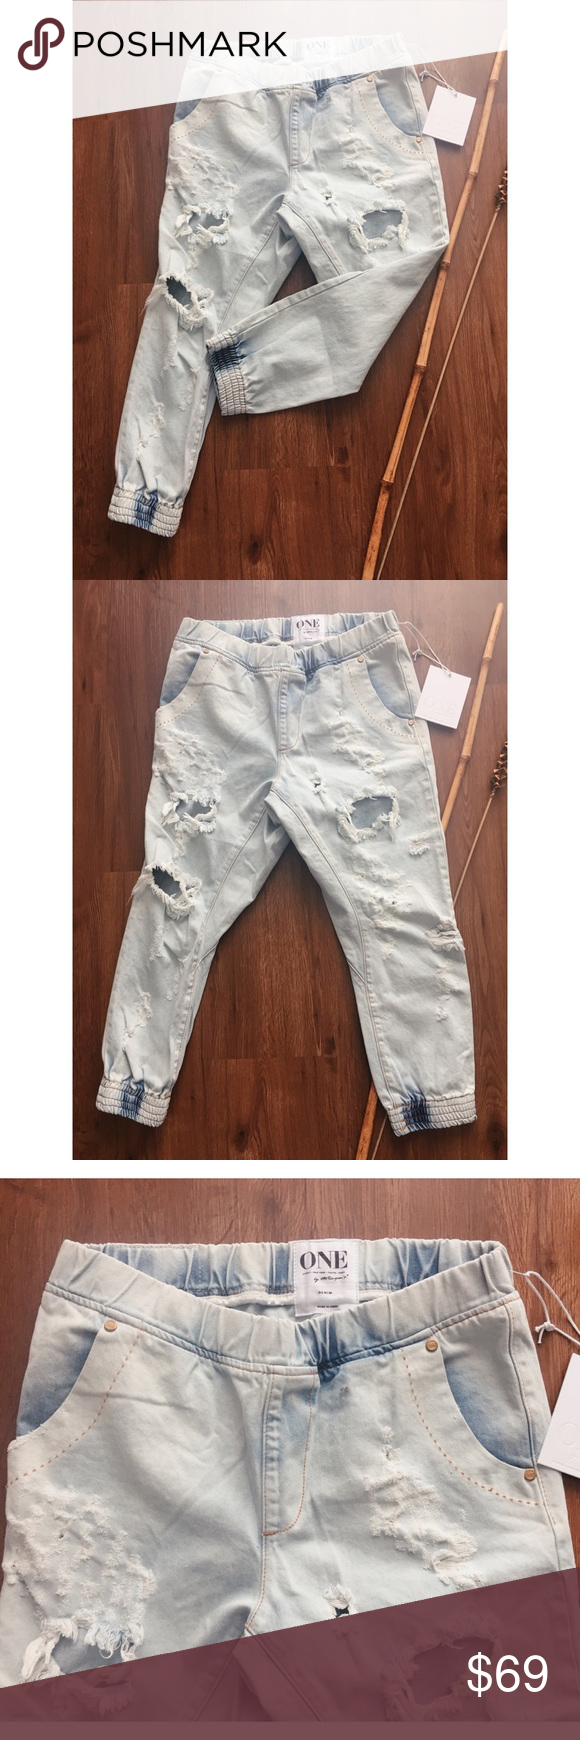 One Teaspoon Dundees Pant Anarchy Sz S Nwt Distressed Elastic Low Drop Waist Size S Is Equal To Size 4 Based On Their Size Ch Pants Clothes Design Oneteaspoon